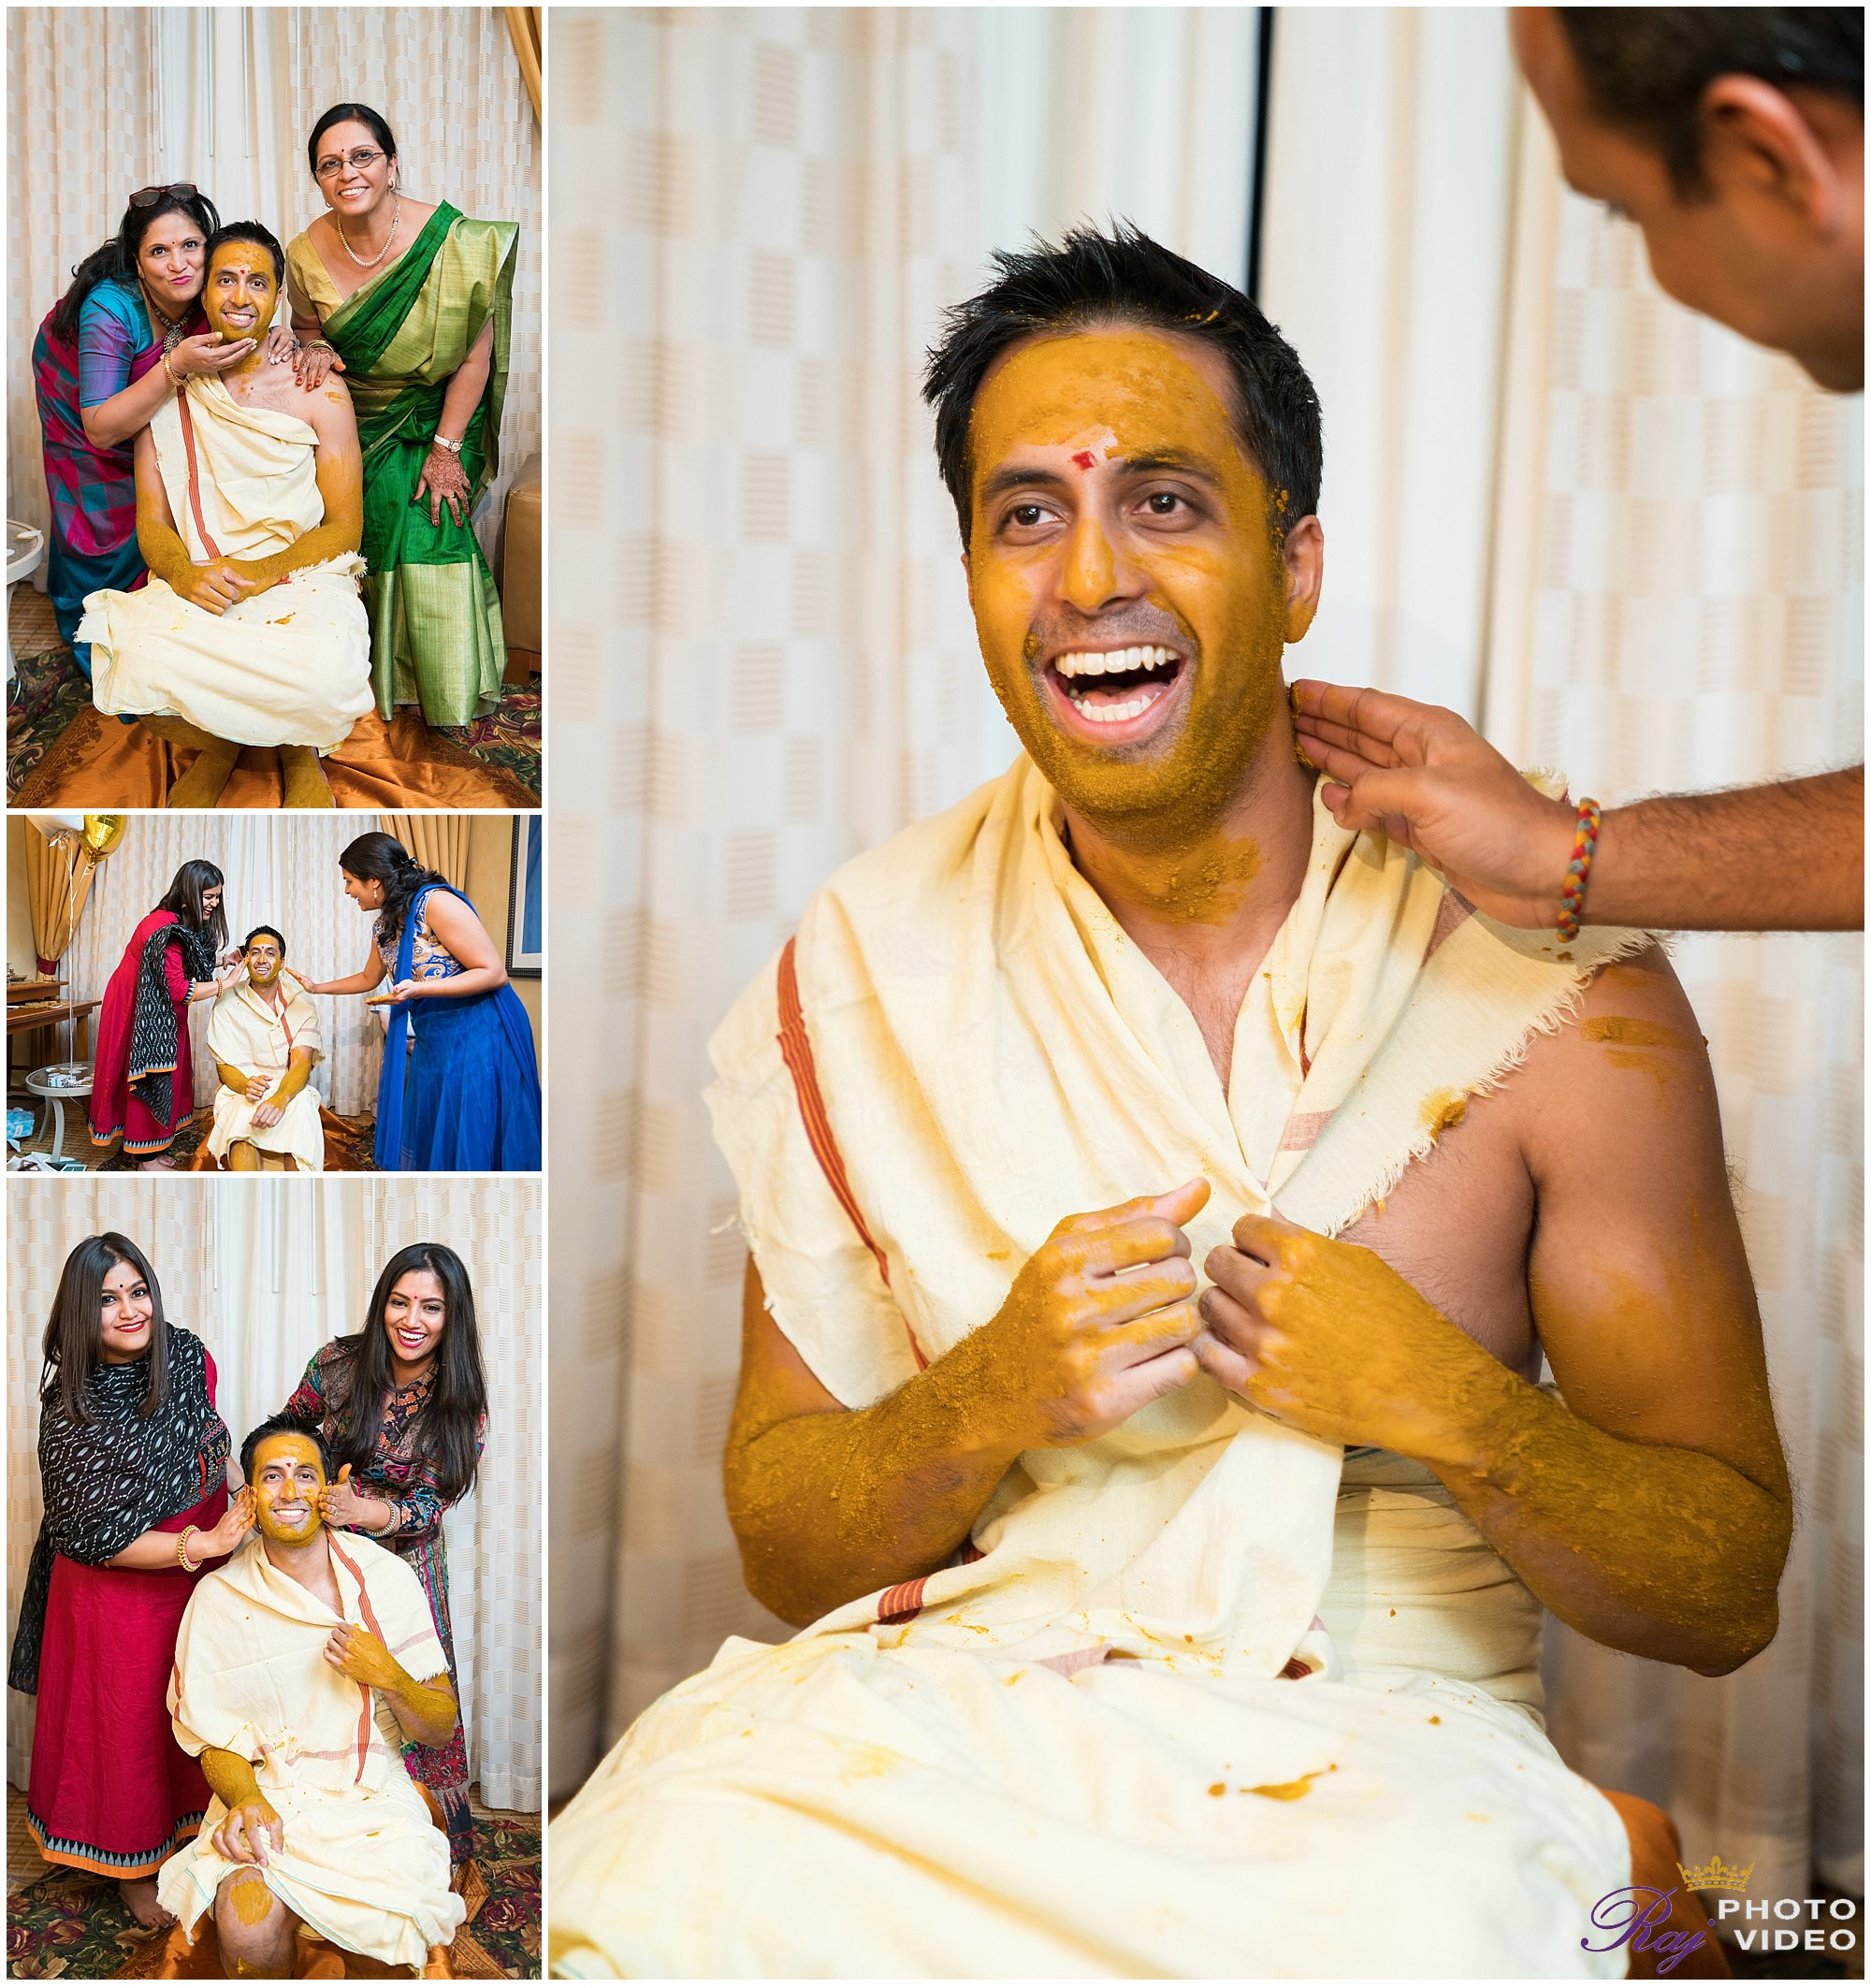 Scottsdale_Marriott_at_McDowell_Mountains_Arizona_Indian_Wedding_Sapna_Shyam-24.jpg